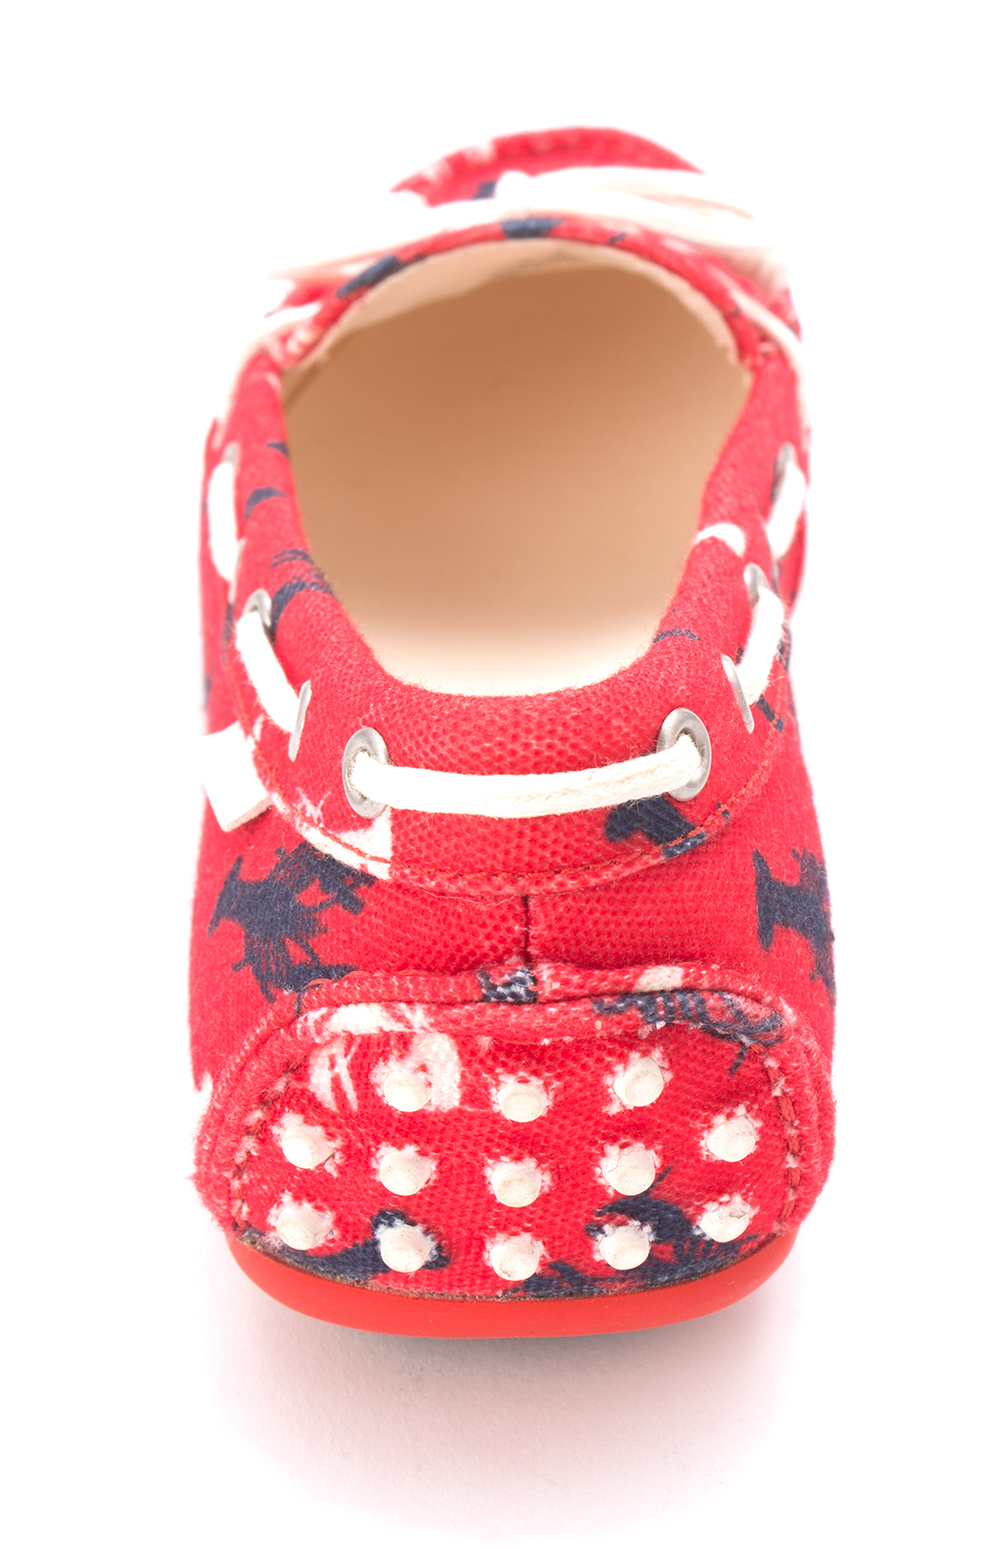 Cole Haan Womens Aviannasam Closed Toe Boat Shoes, Red, Size 6.0